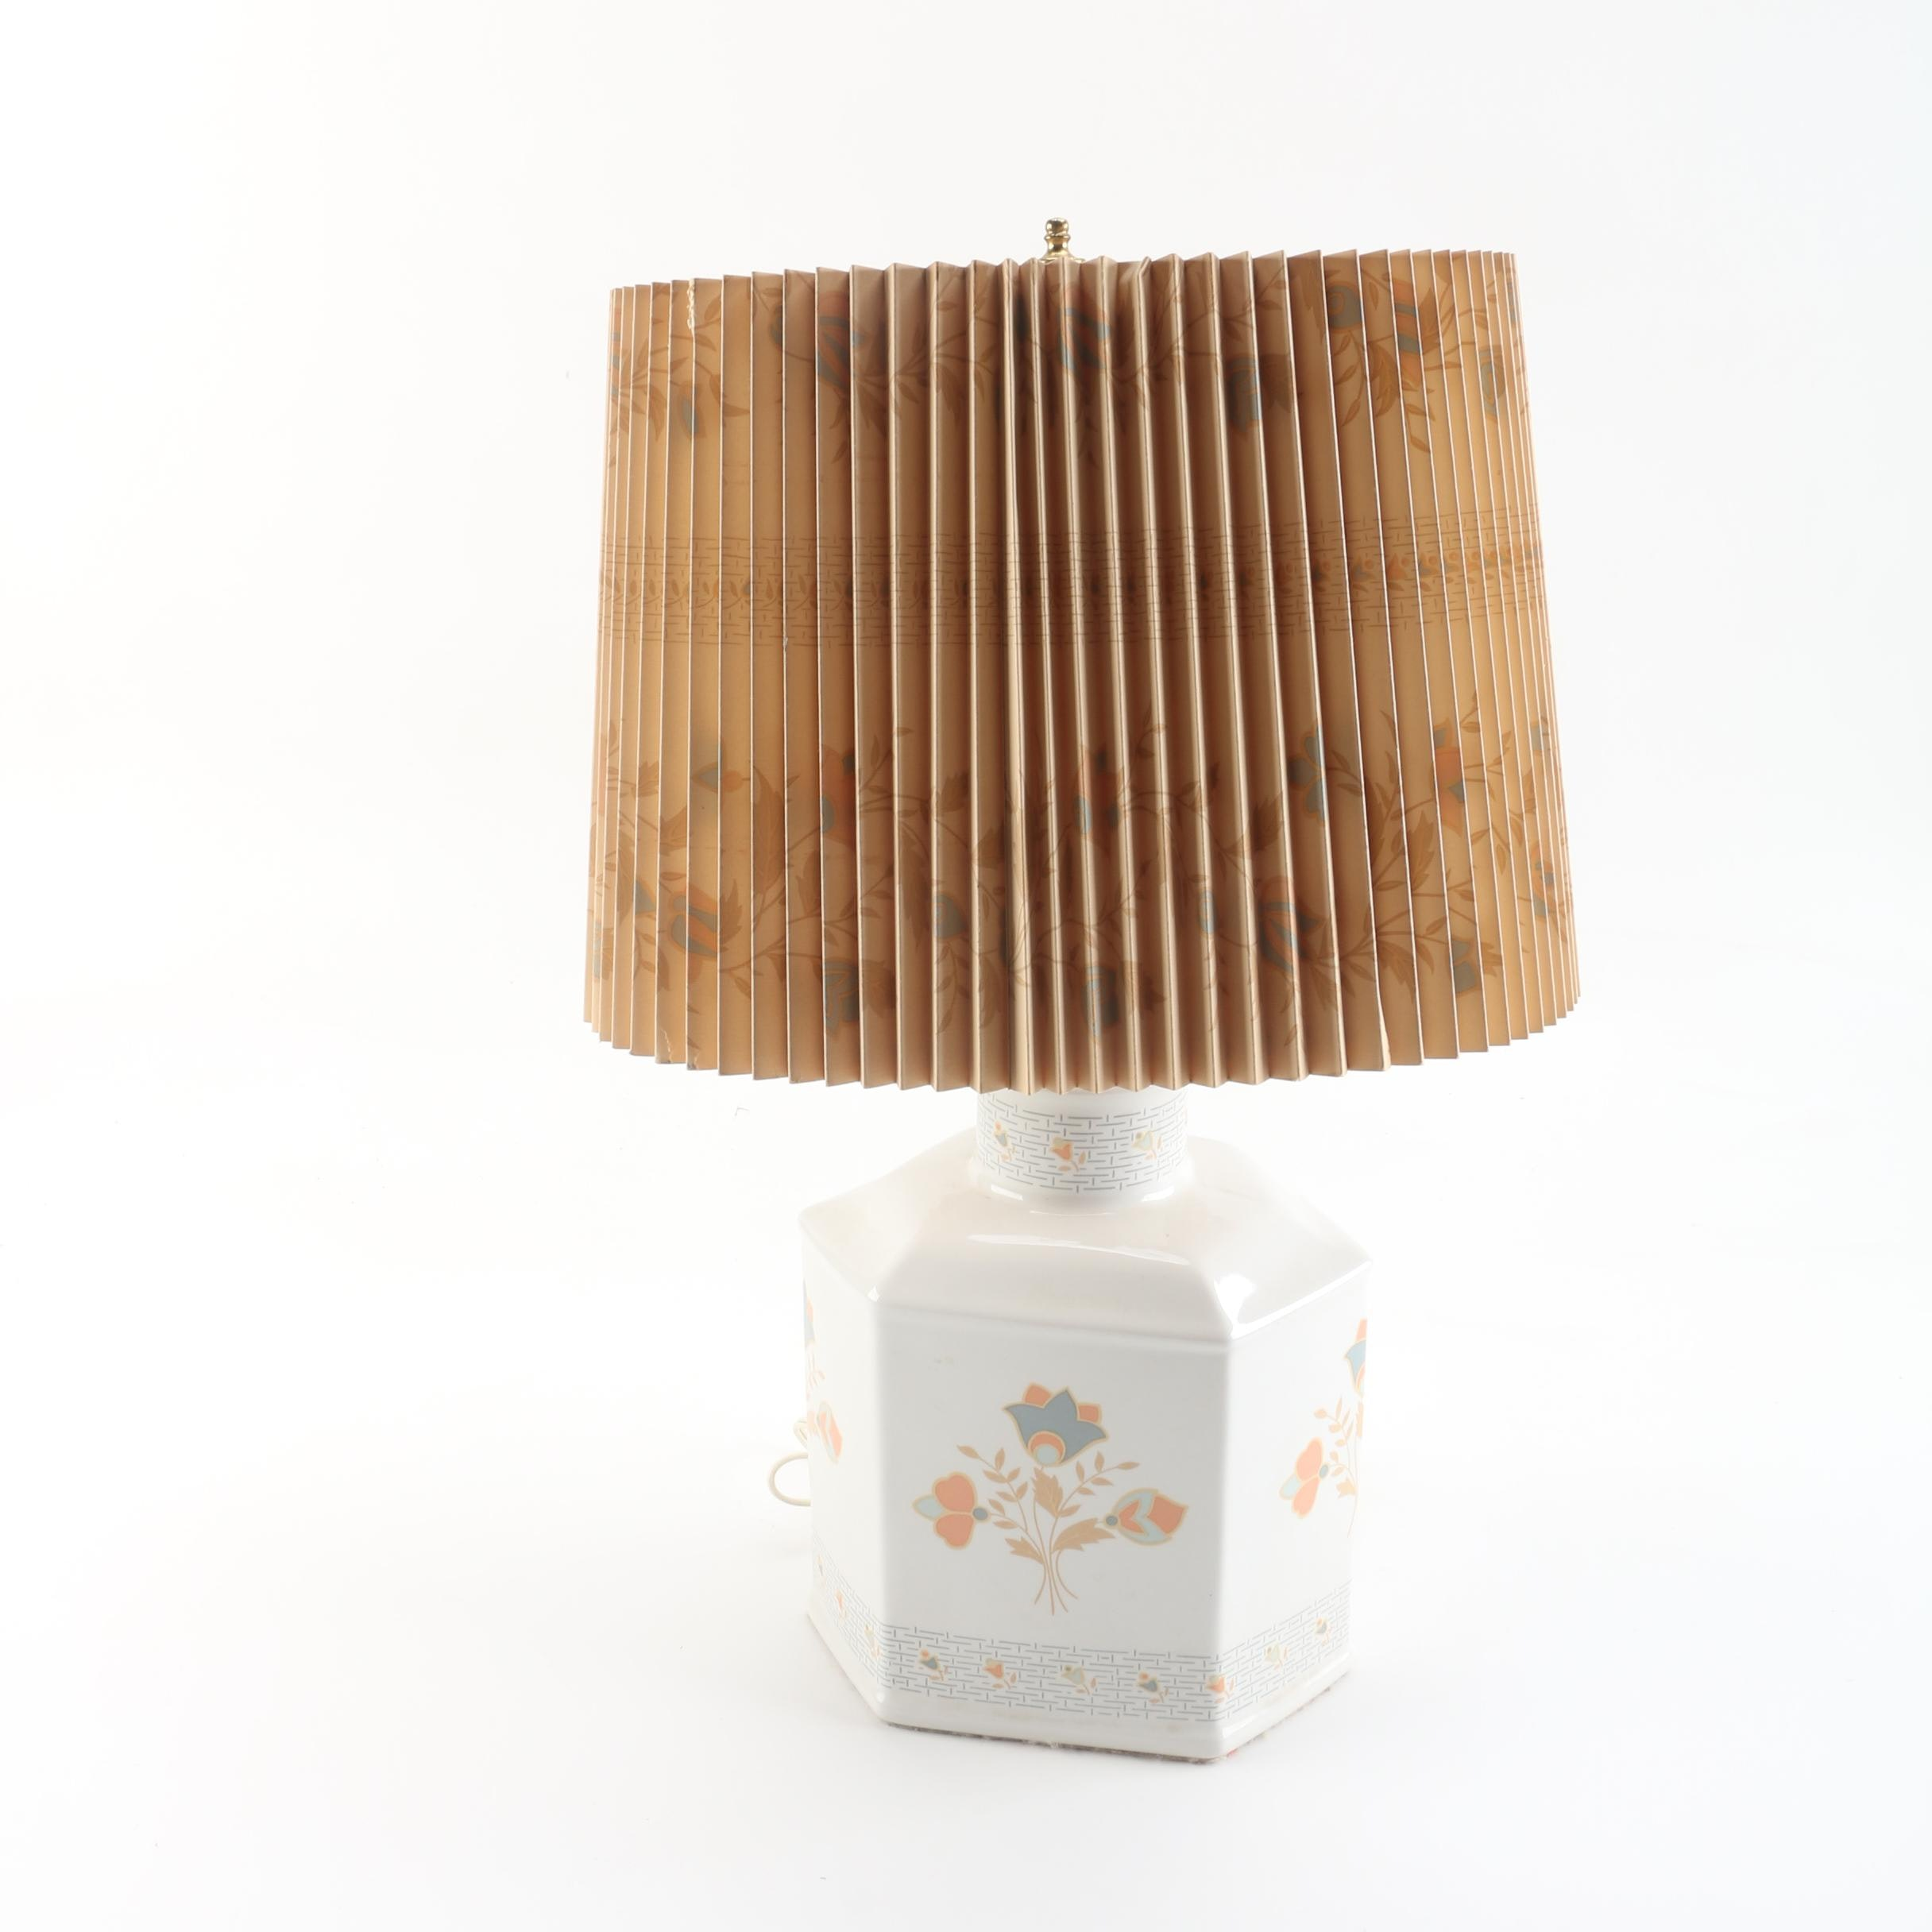 Vintage Mary Quant for Murray Feiss Ceramic Table Lamp And Shade